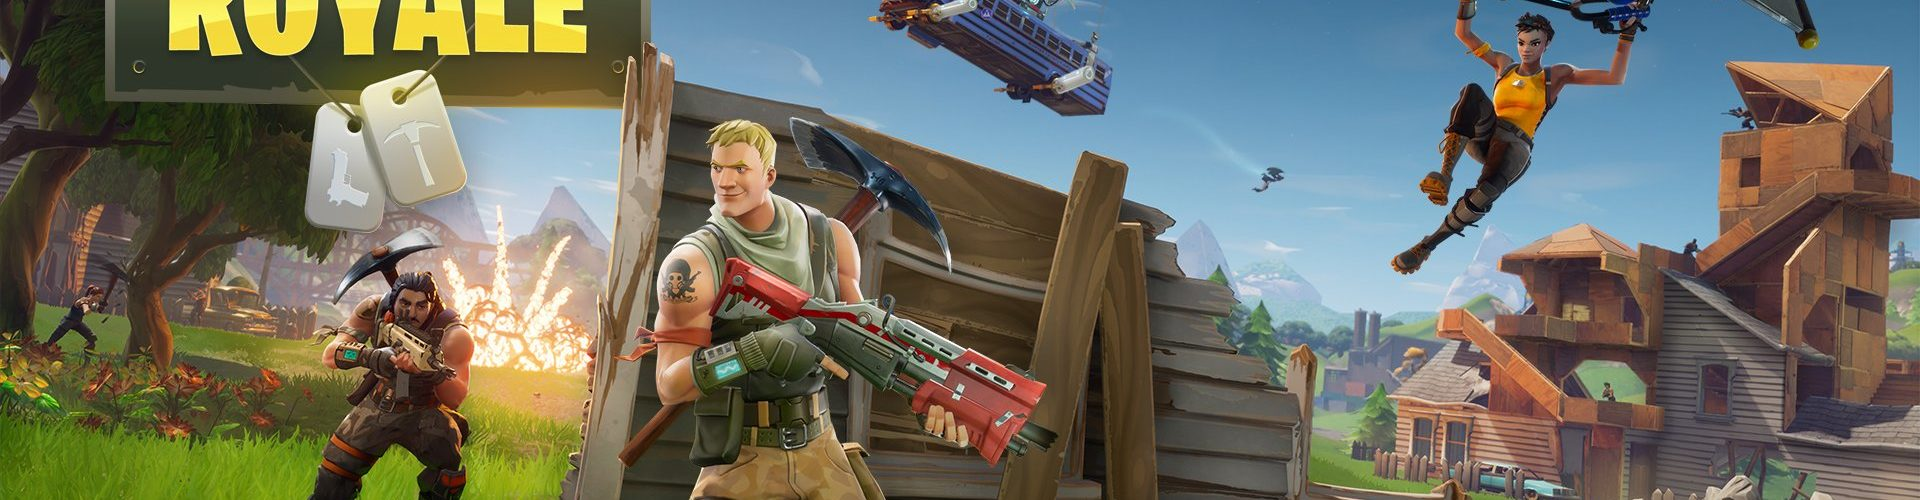 Fortnite Person Peeking Over Wall Fortnite Tips And Tricks To Get You Closer To A Victory Royale Techdissected